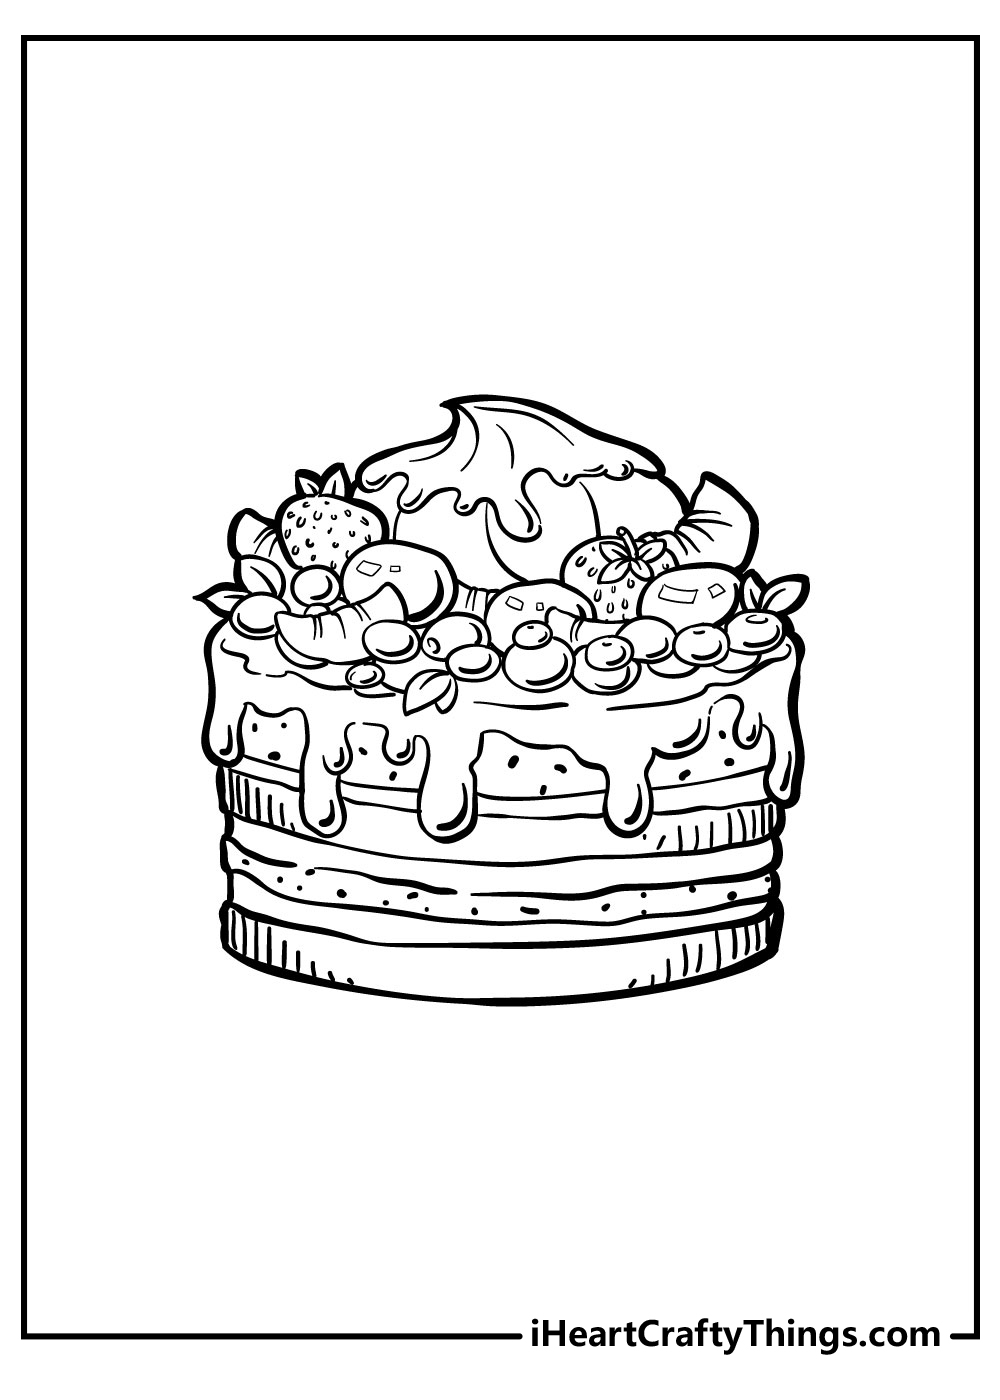 birthday cake coloring pages for kids free download